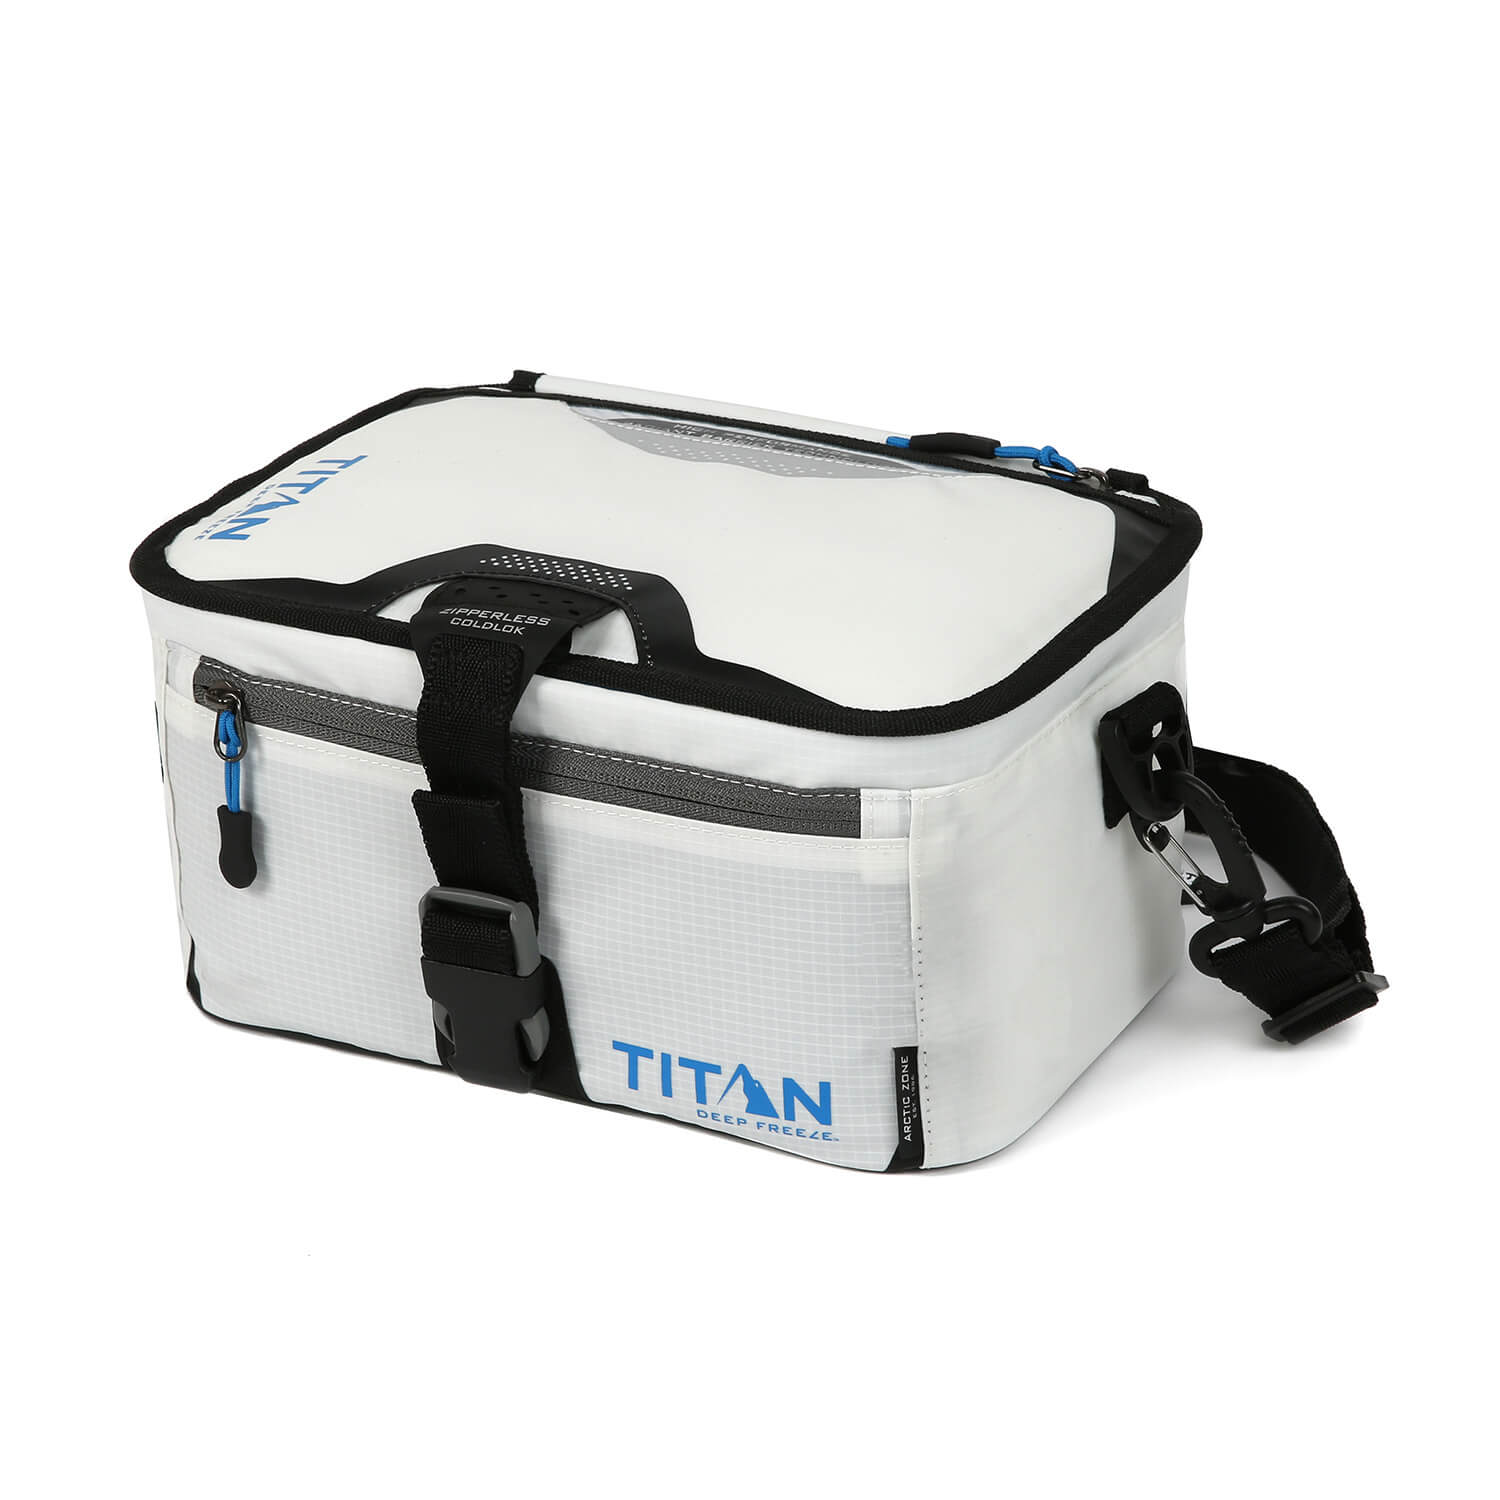 Titan Deep Freeze® Zipperless™ Lunch Box - White - Closed